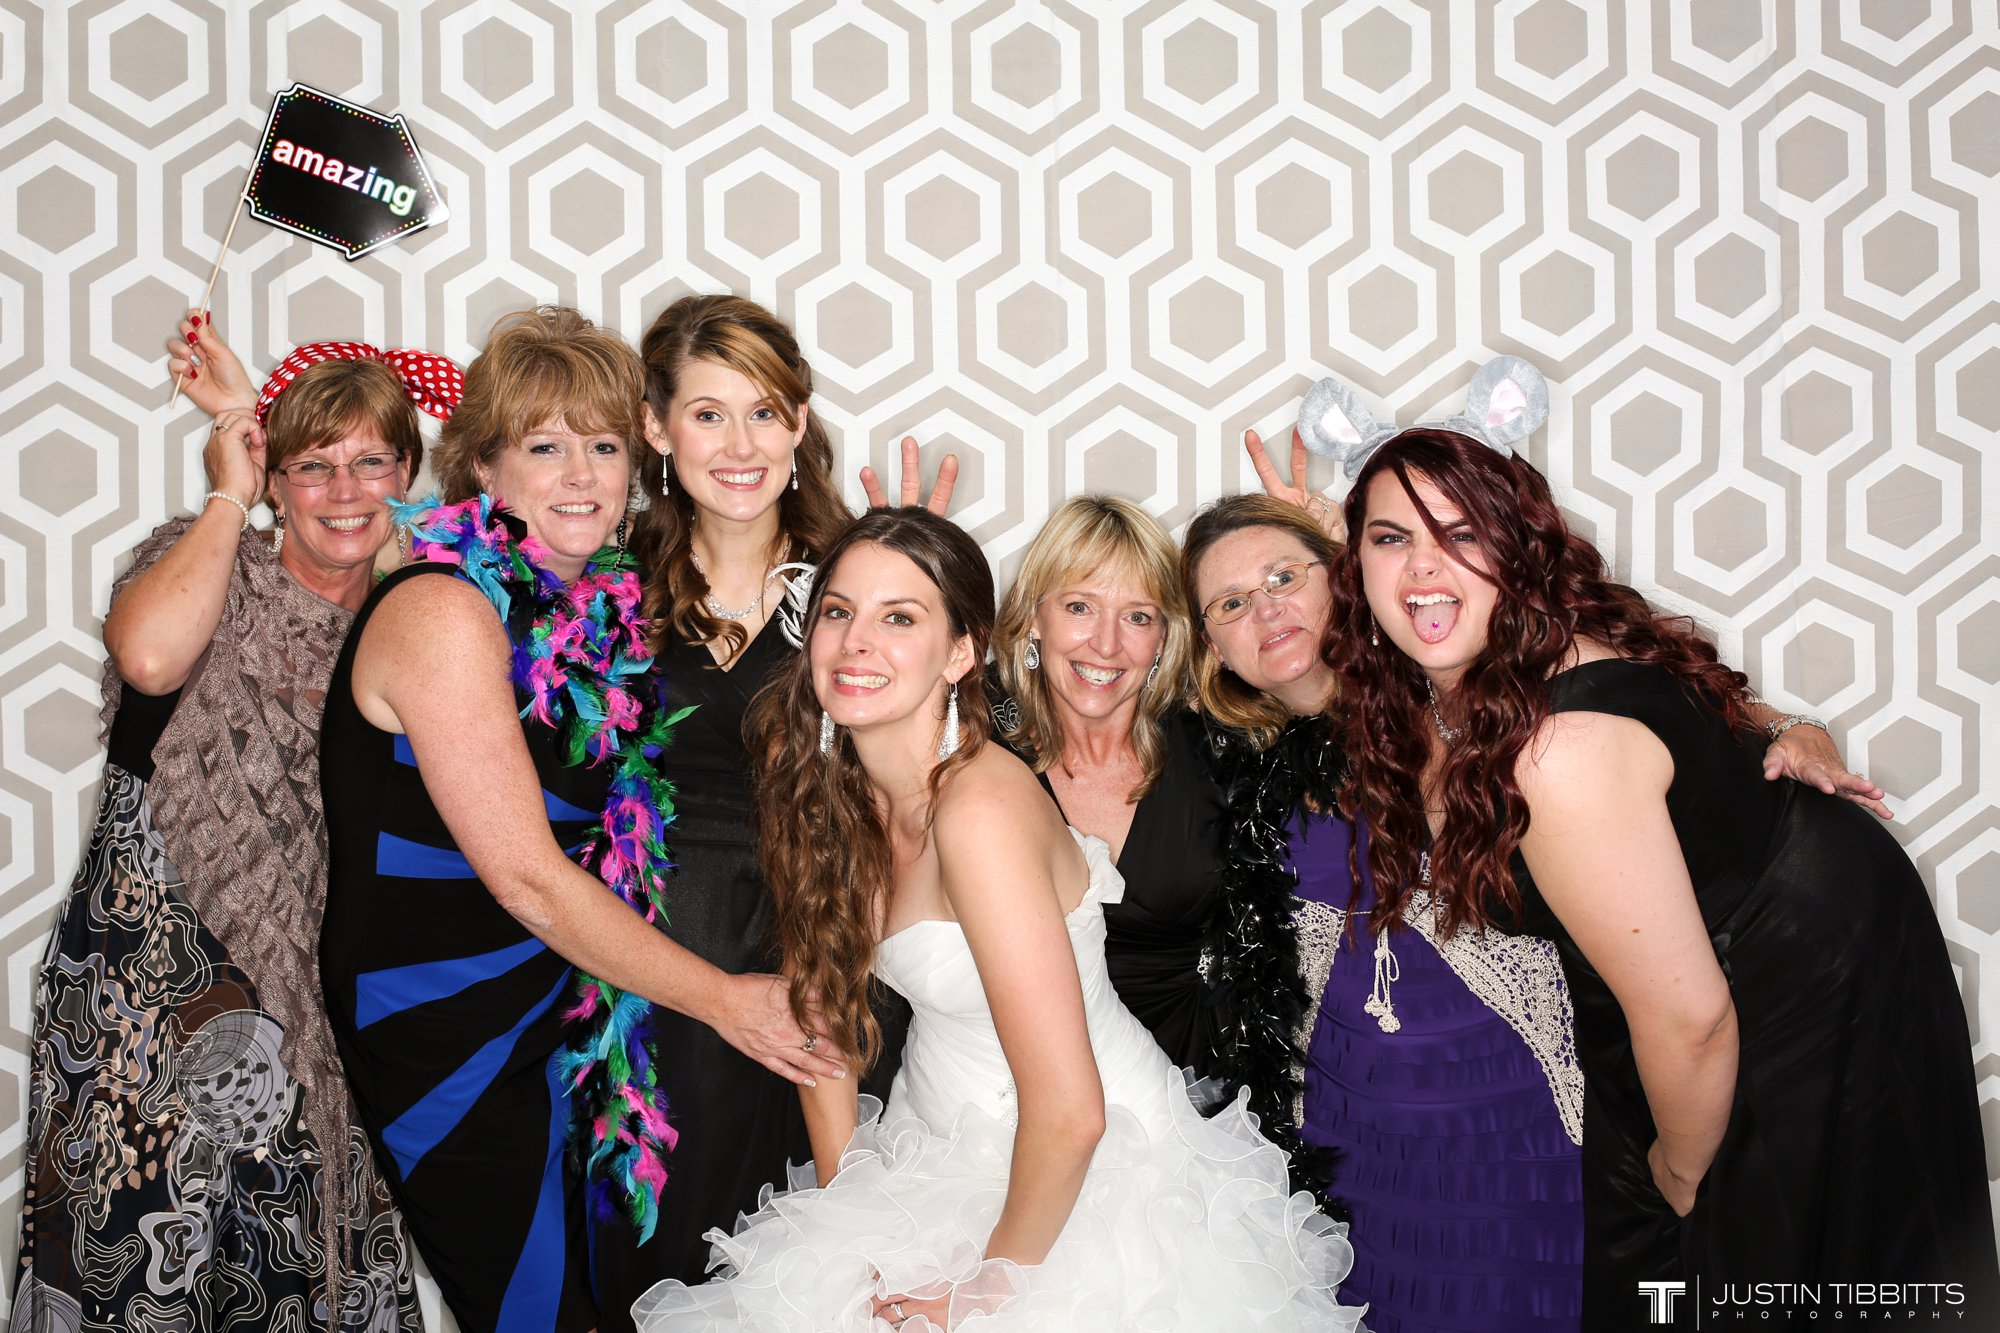 Justin Tibbitts Photography Mr and Mrs Zaffino Deannas Bridal Wedding Photo Booth-78